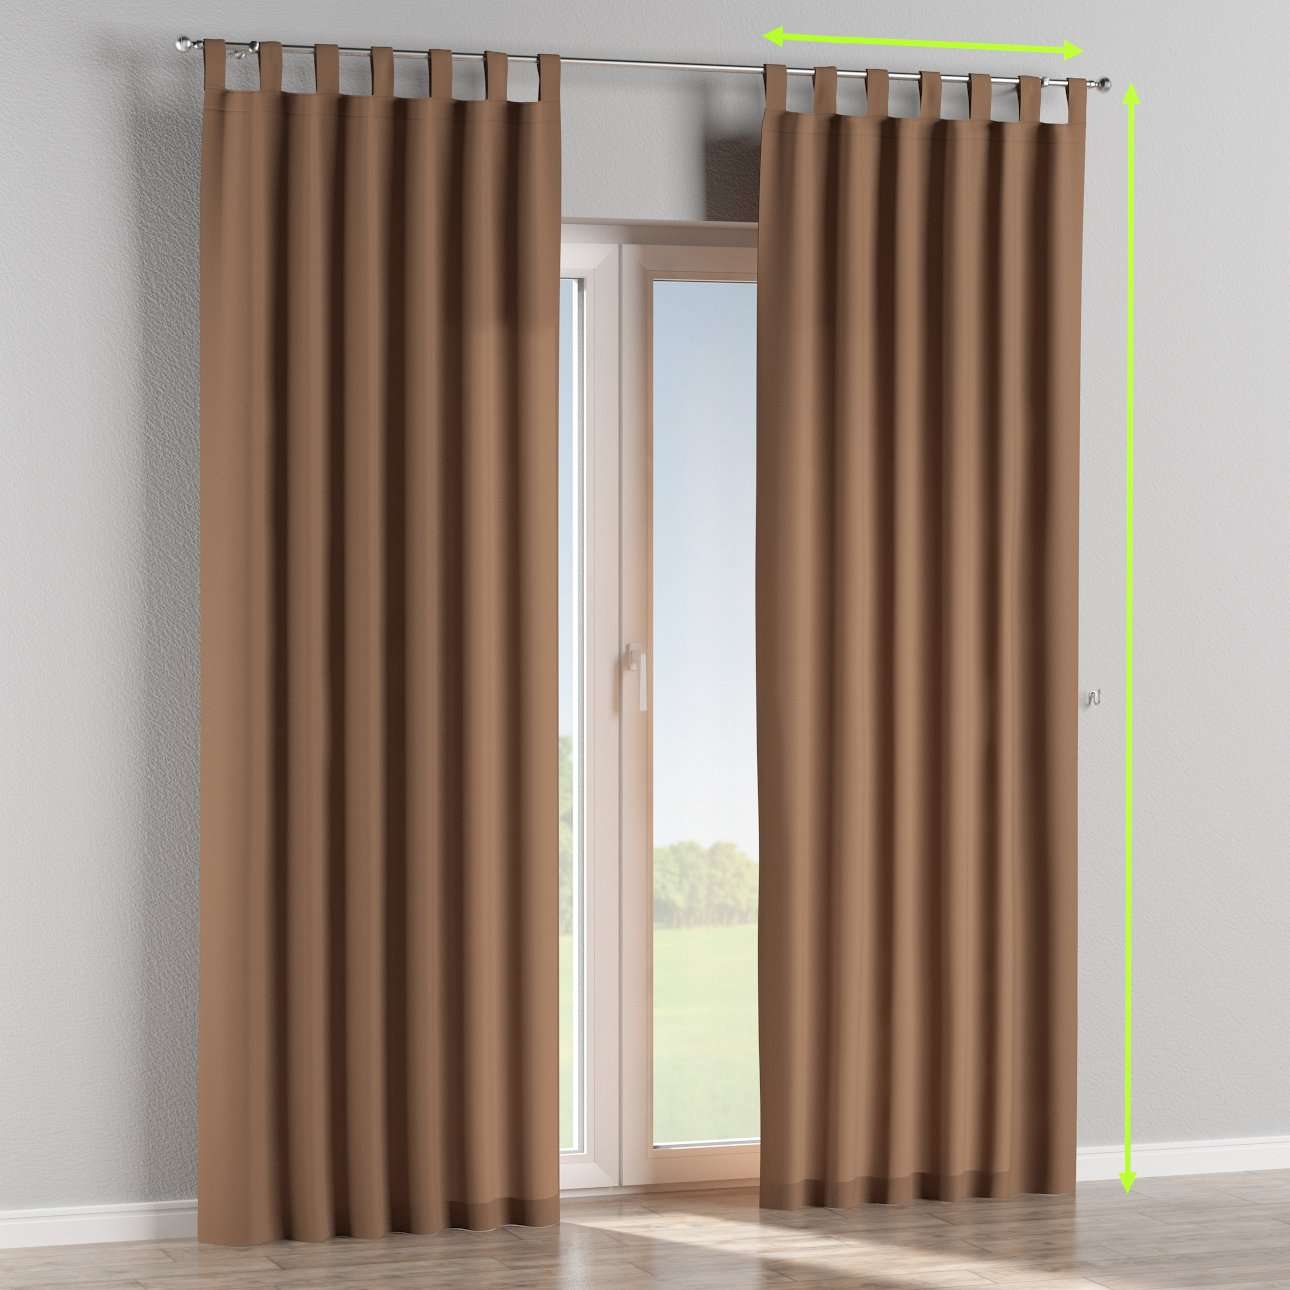 Tab top curtains in collection Cotton Panama, fabric: 702-02